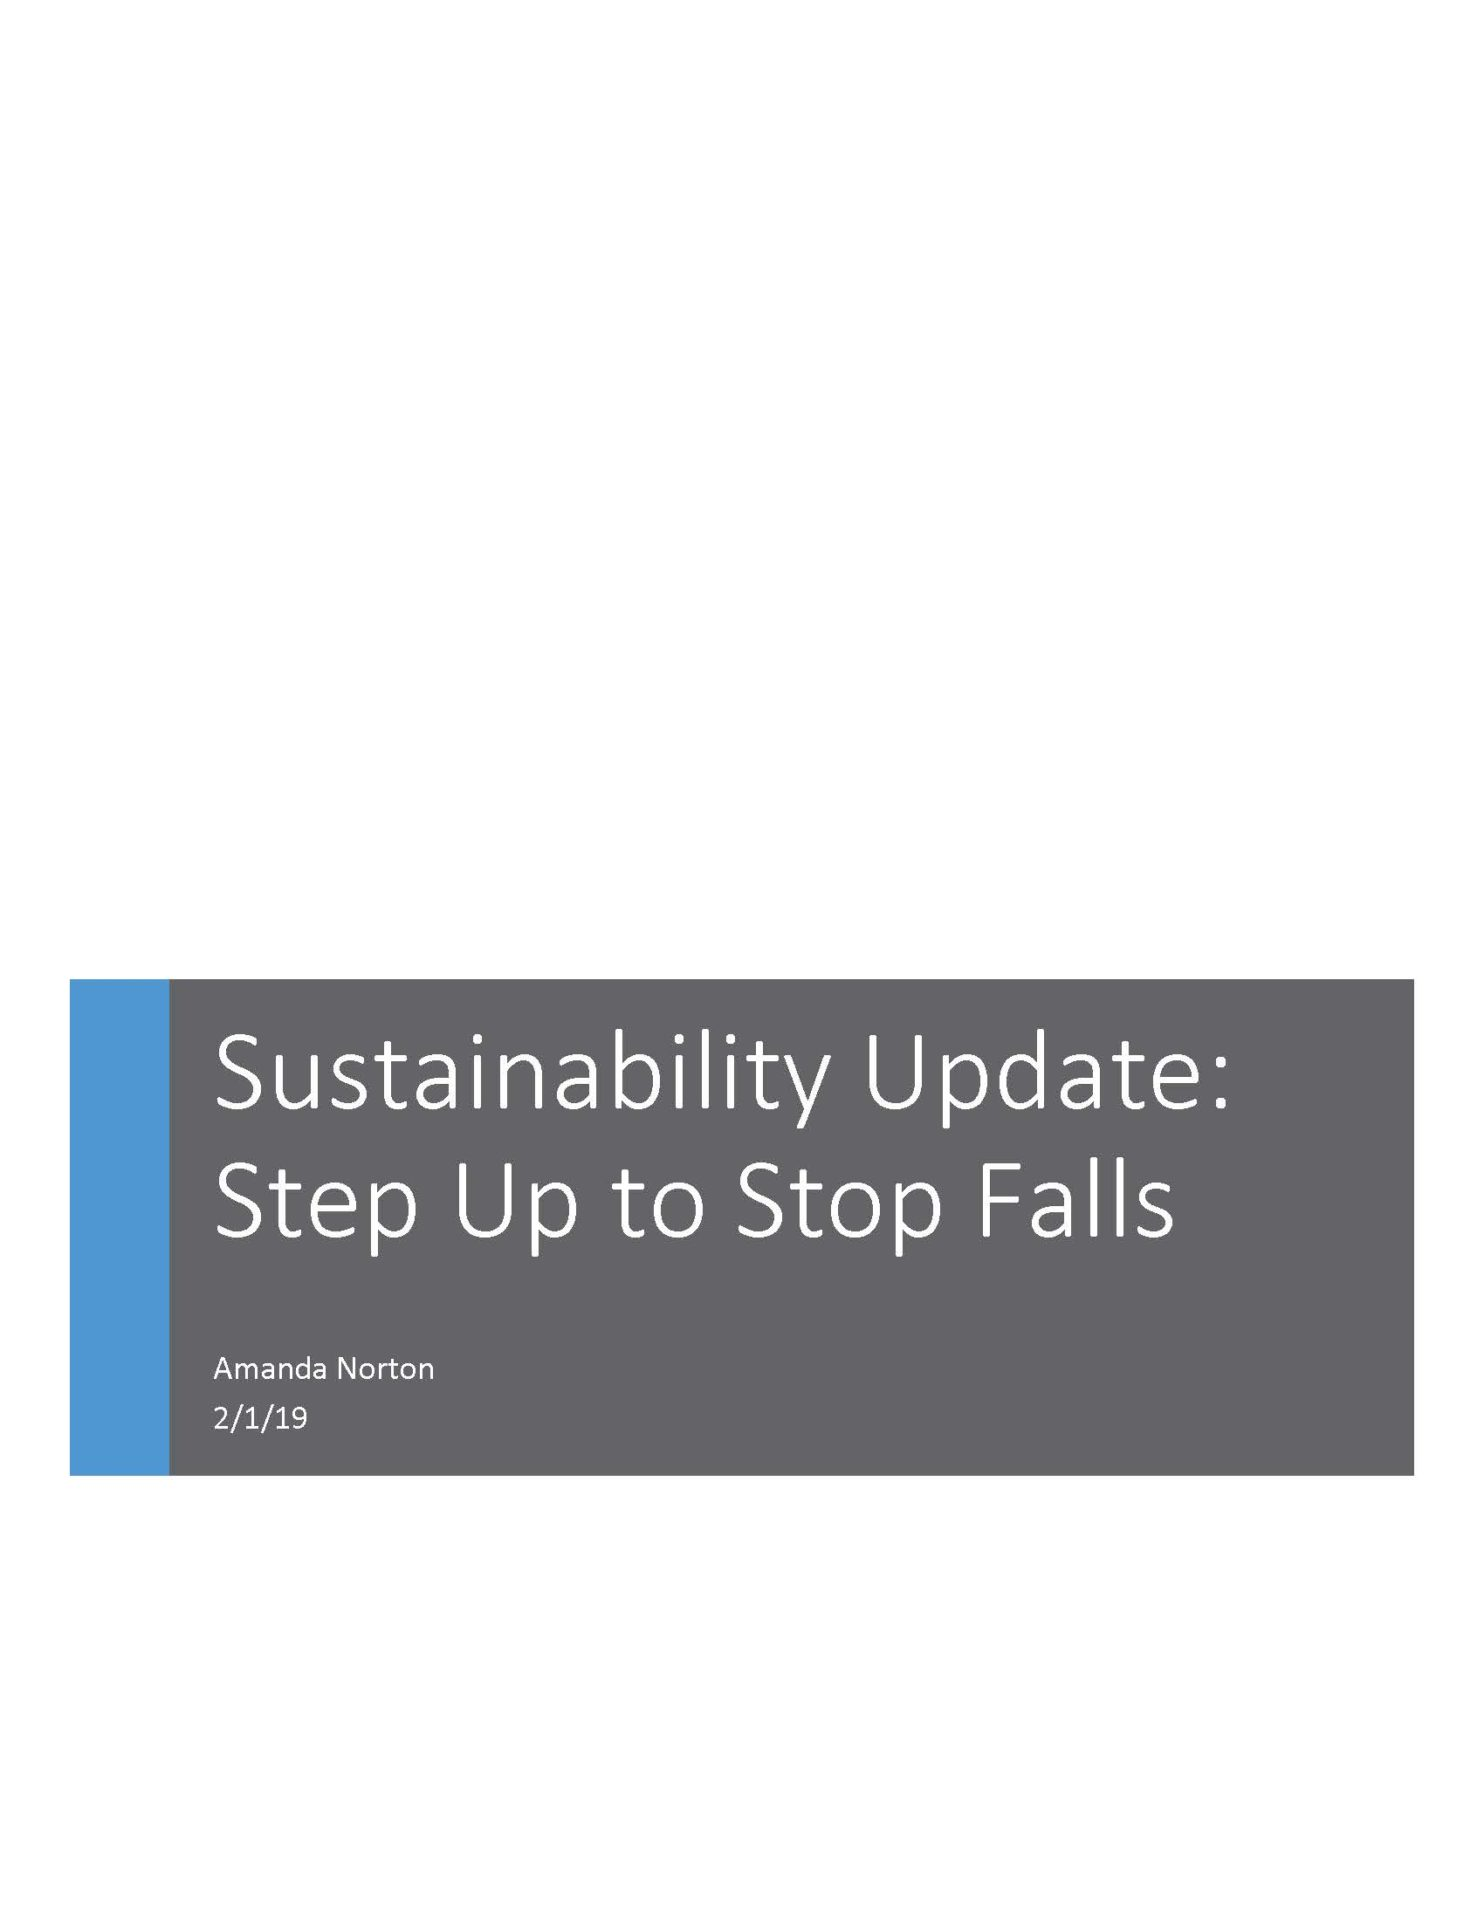 SU2SF Sustainabilty Report Cover